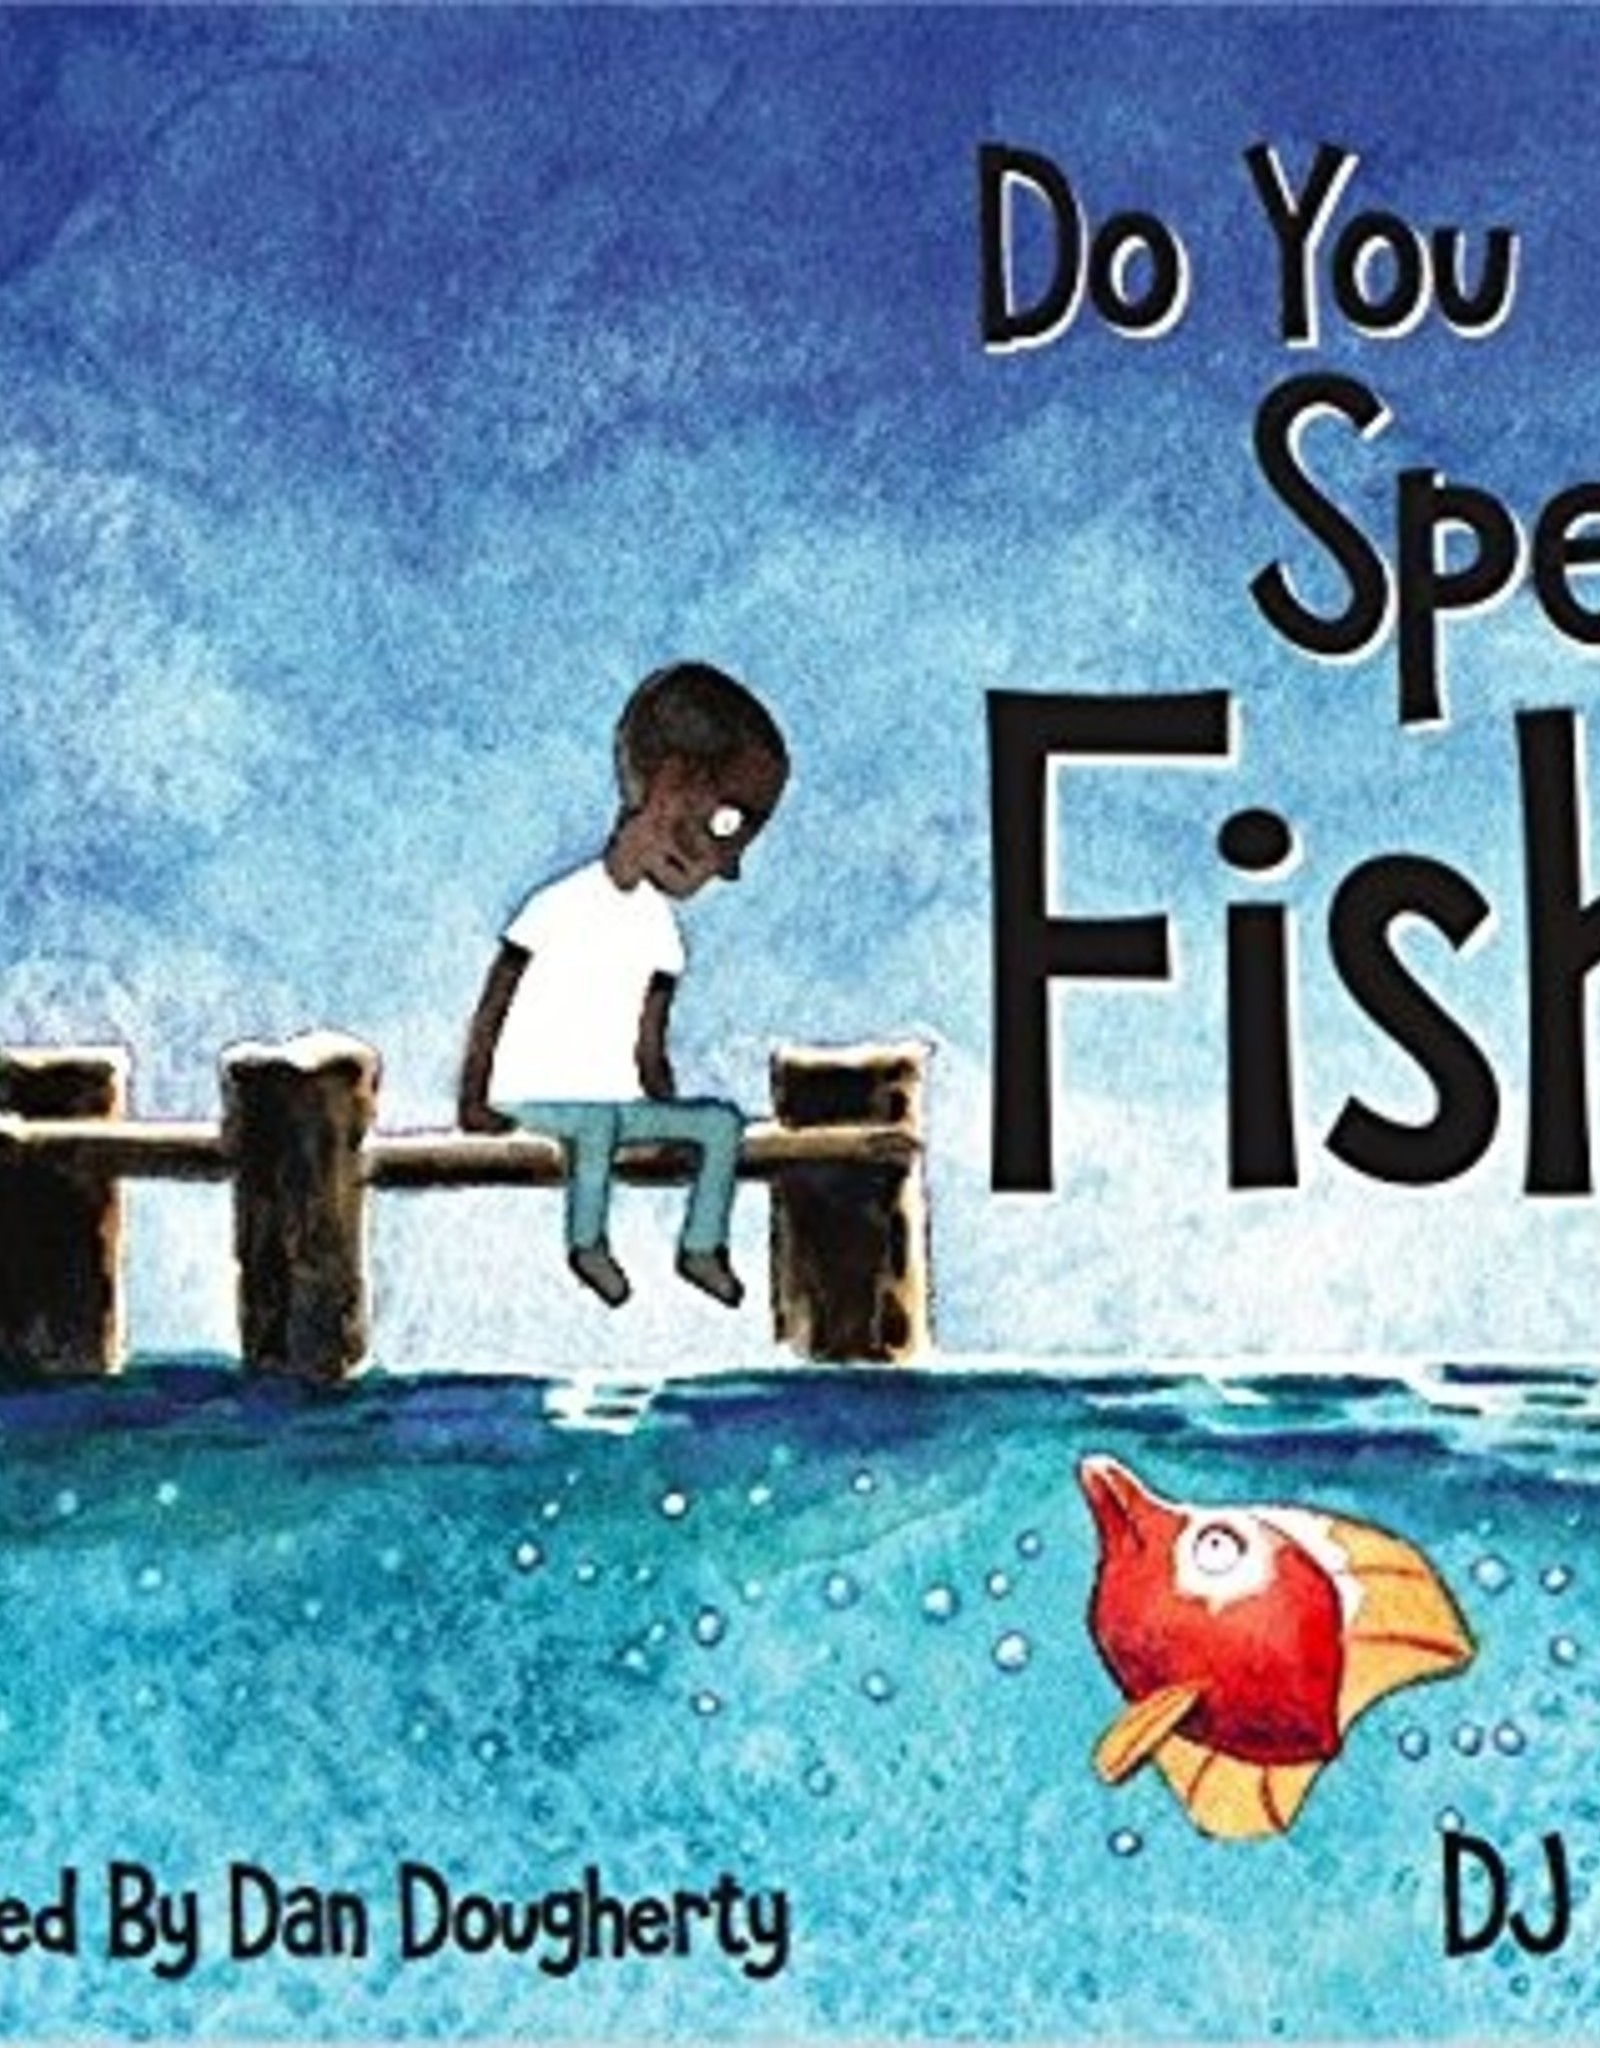 DO YOU SPEAK FISH?